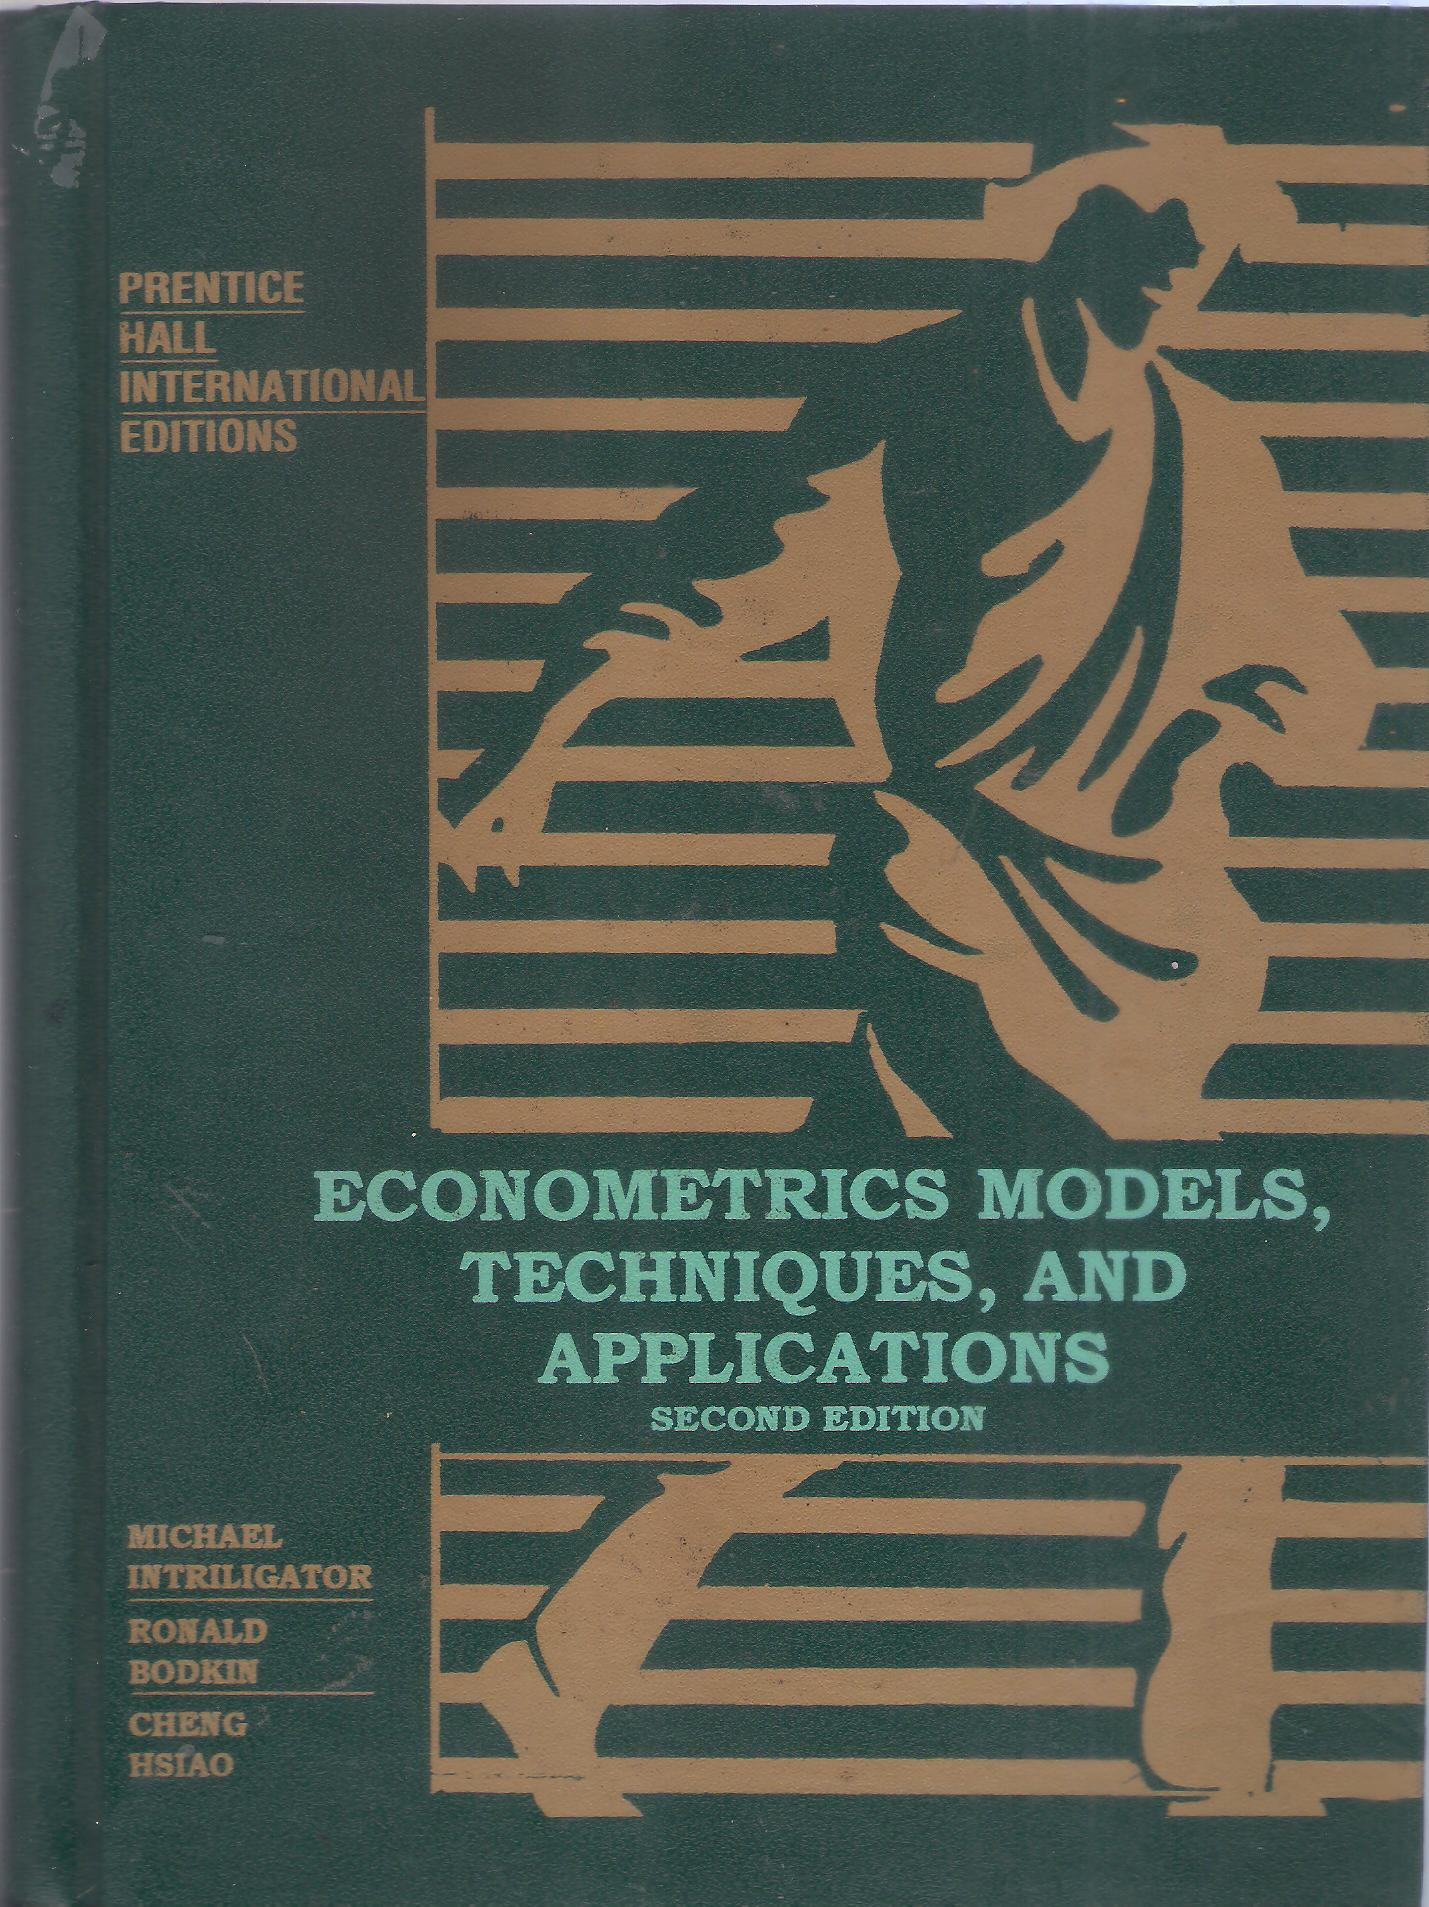 Econometrics Models, Techniques, and Applictions.